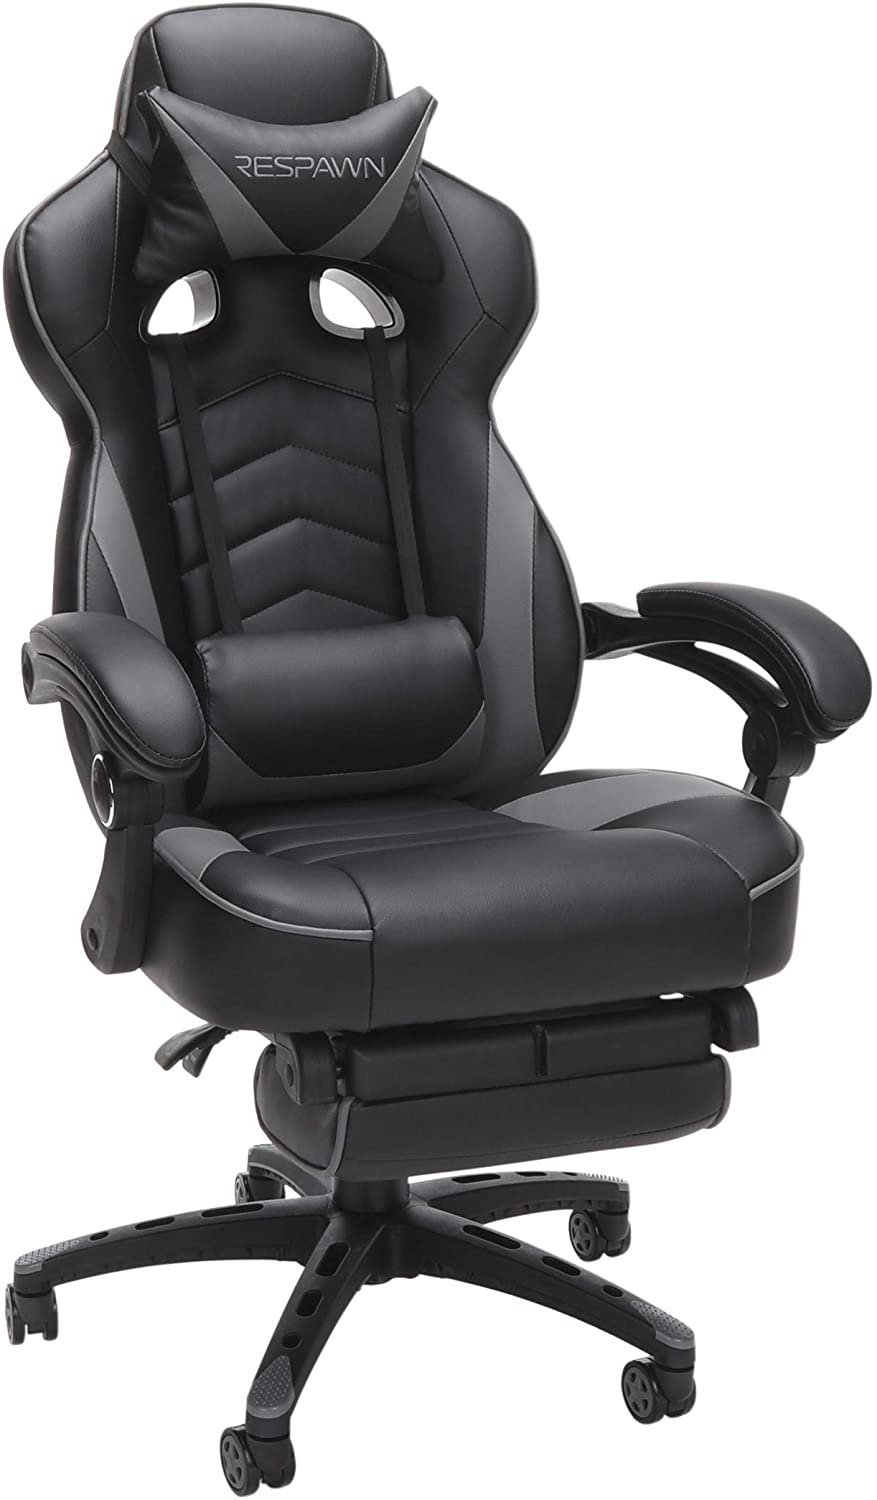 Gaming chair with a footrest